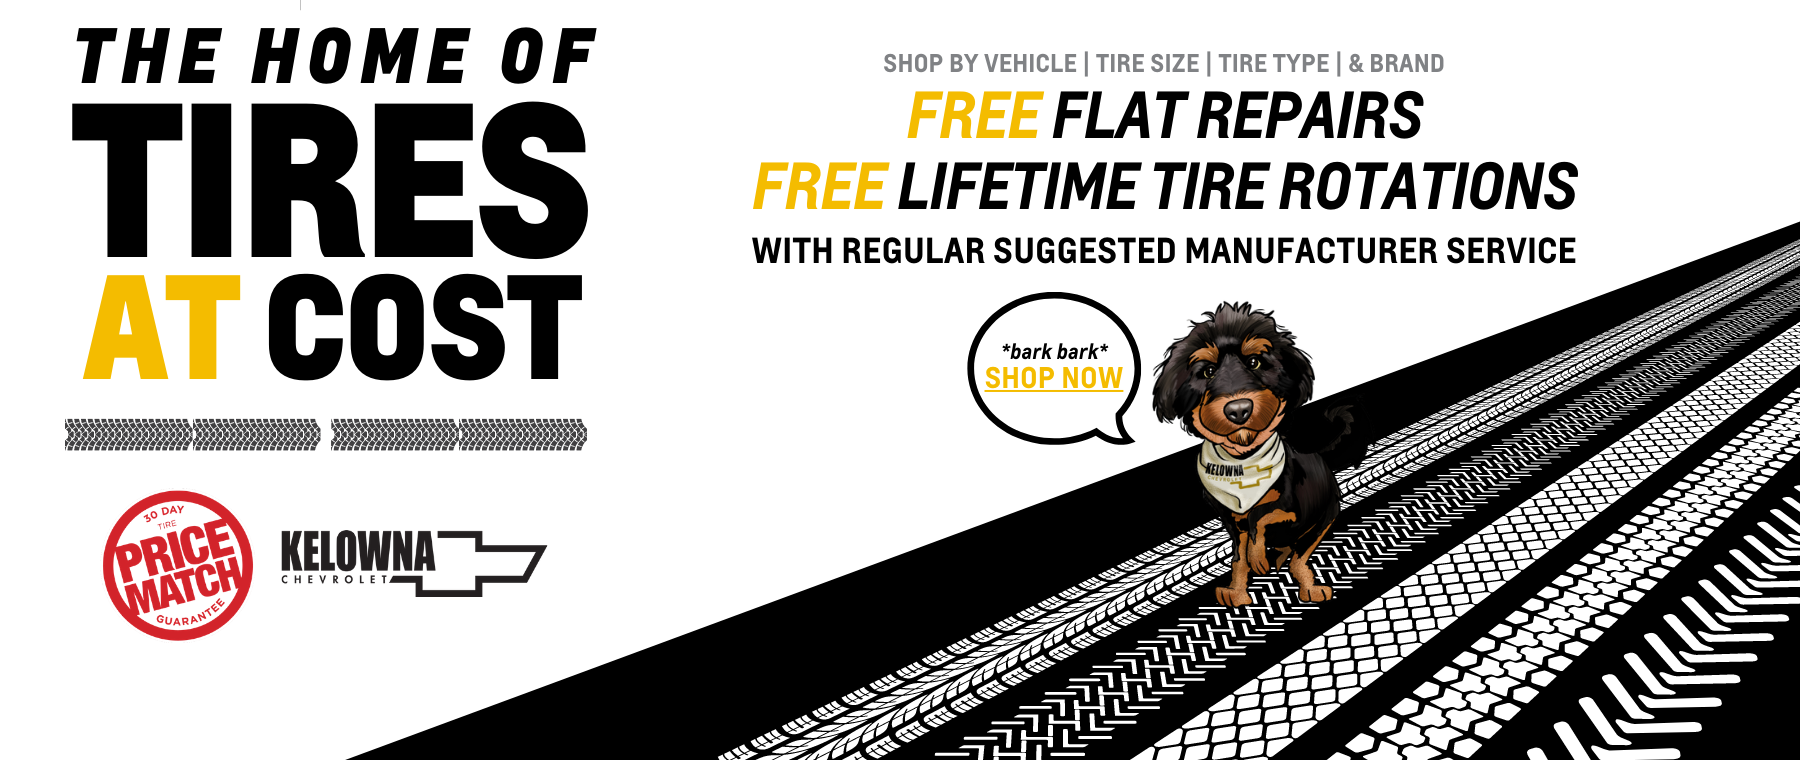 Tires at Cost. Kelowna Chevrolet.